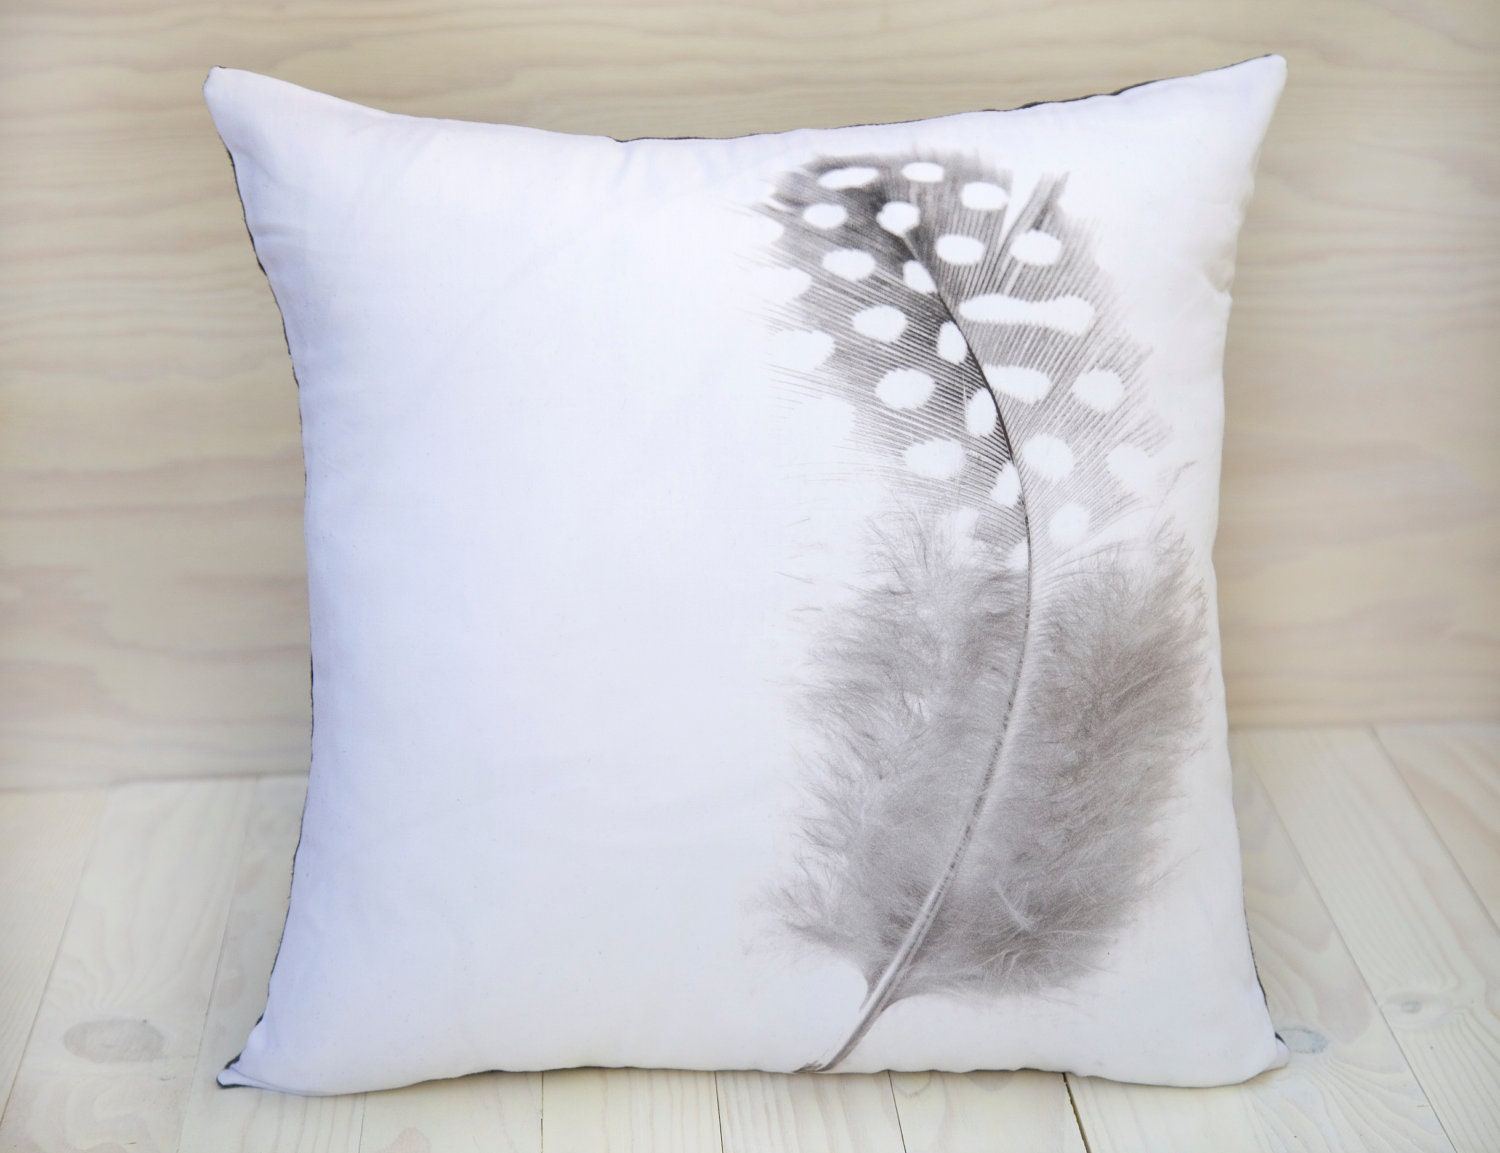 Handmade Decorative Throw Pillows : Feather throw pillow handmade decorative home decor black